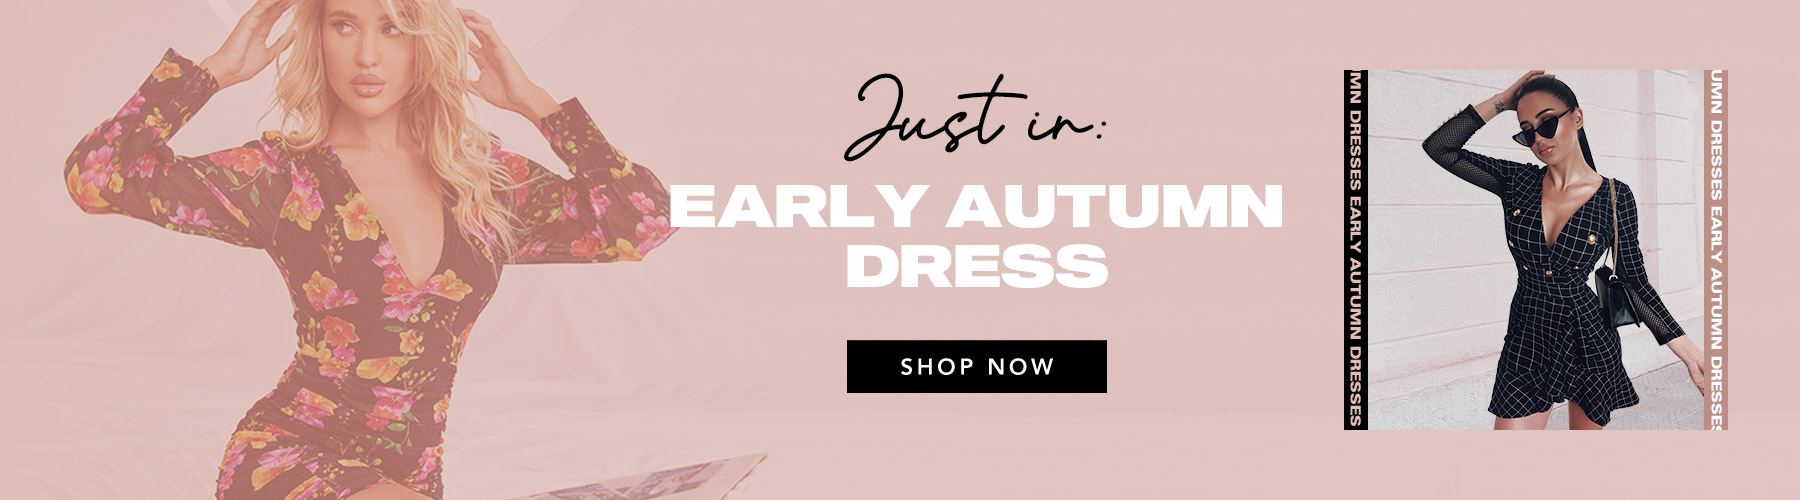 Early Autumn Dresses